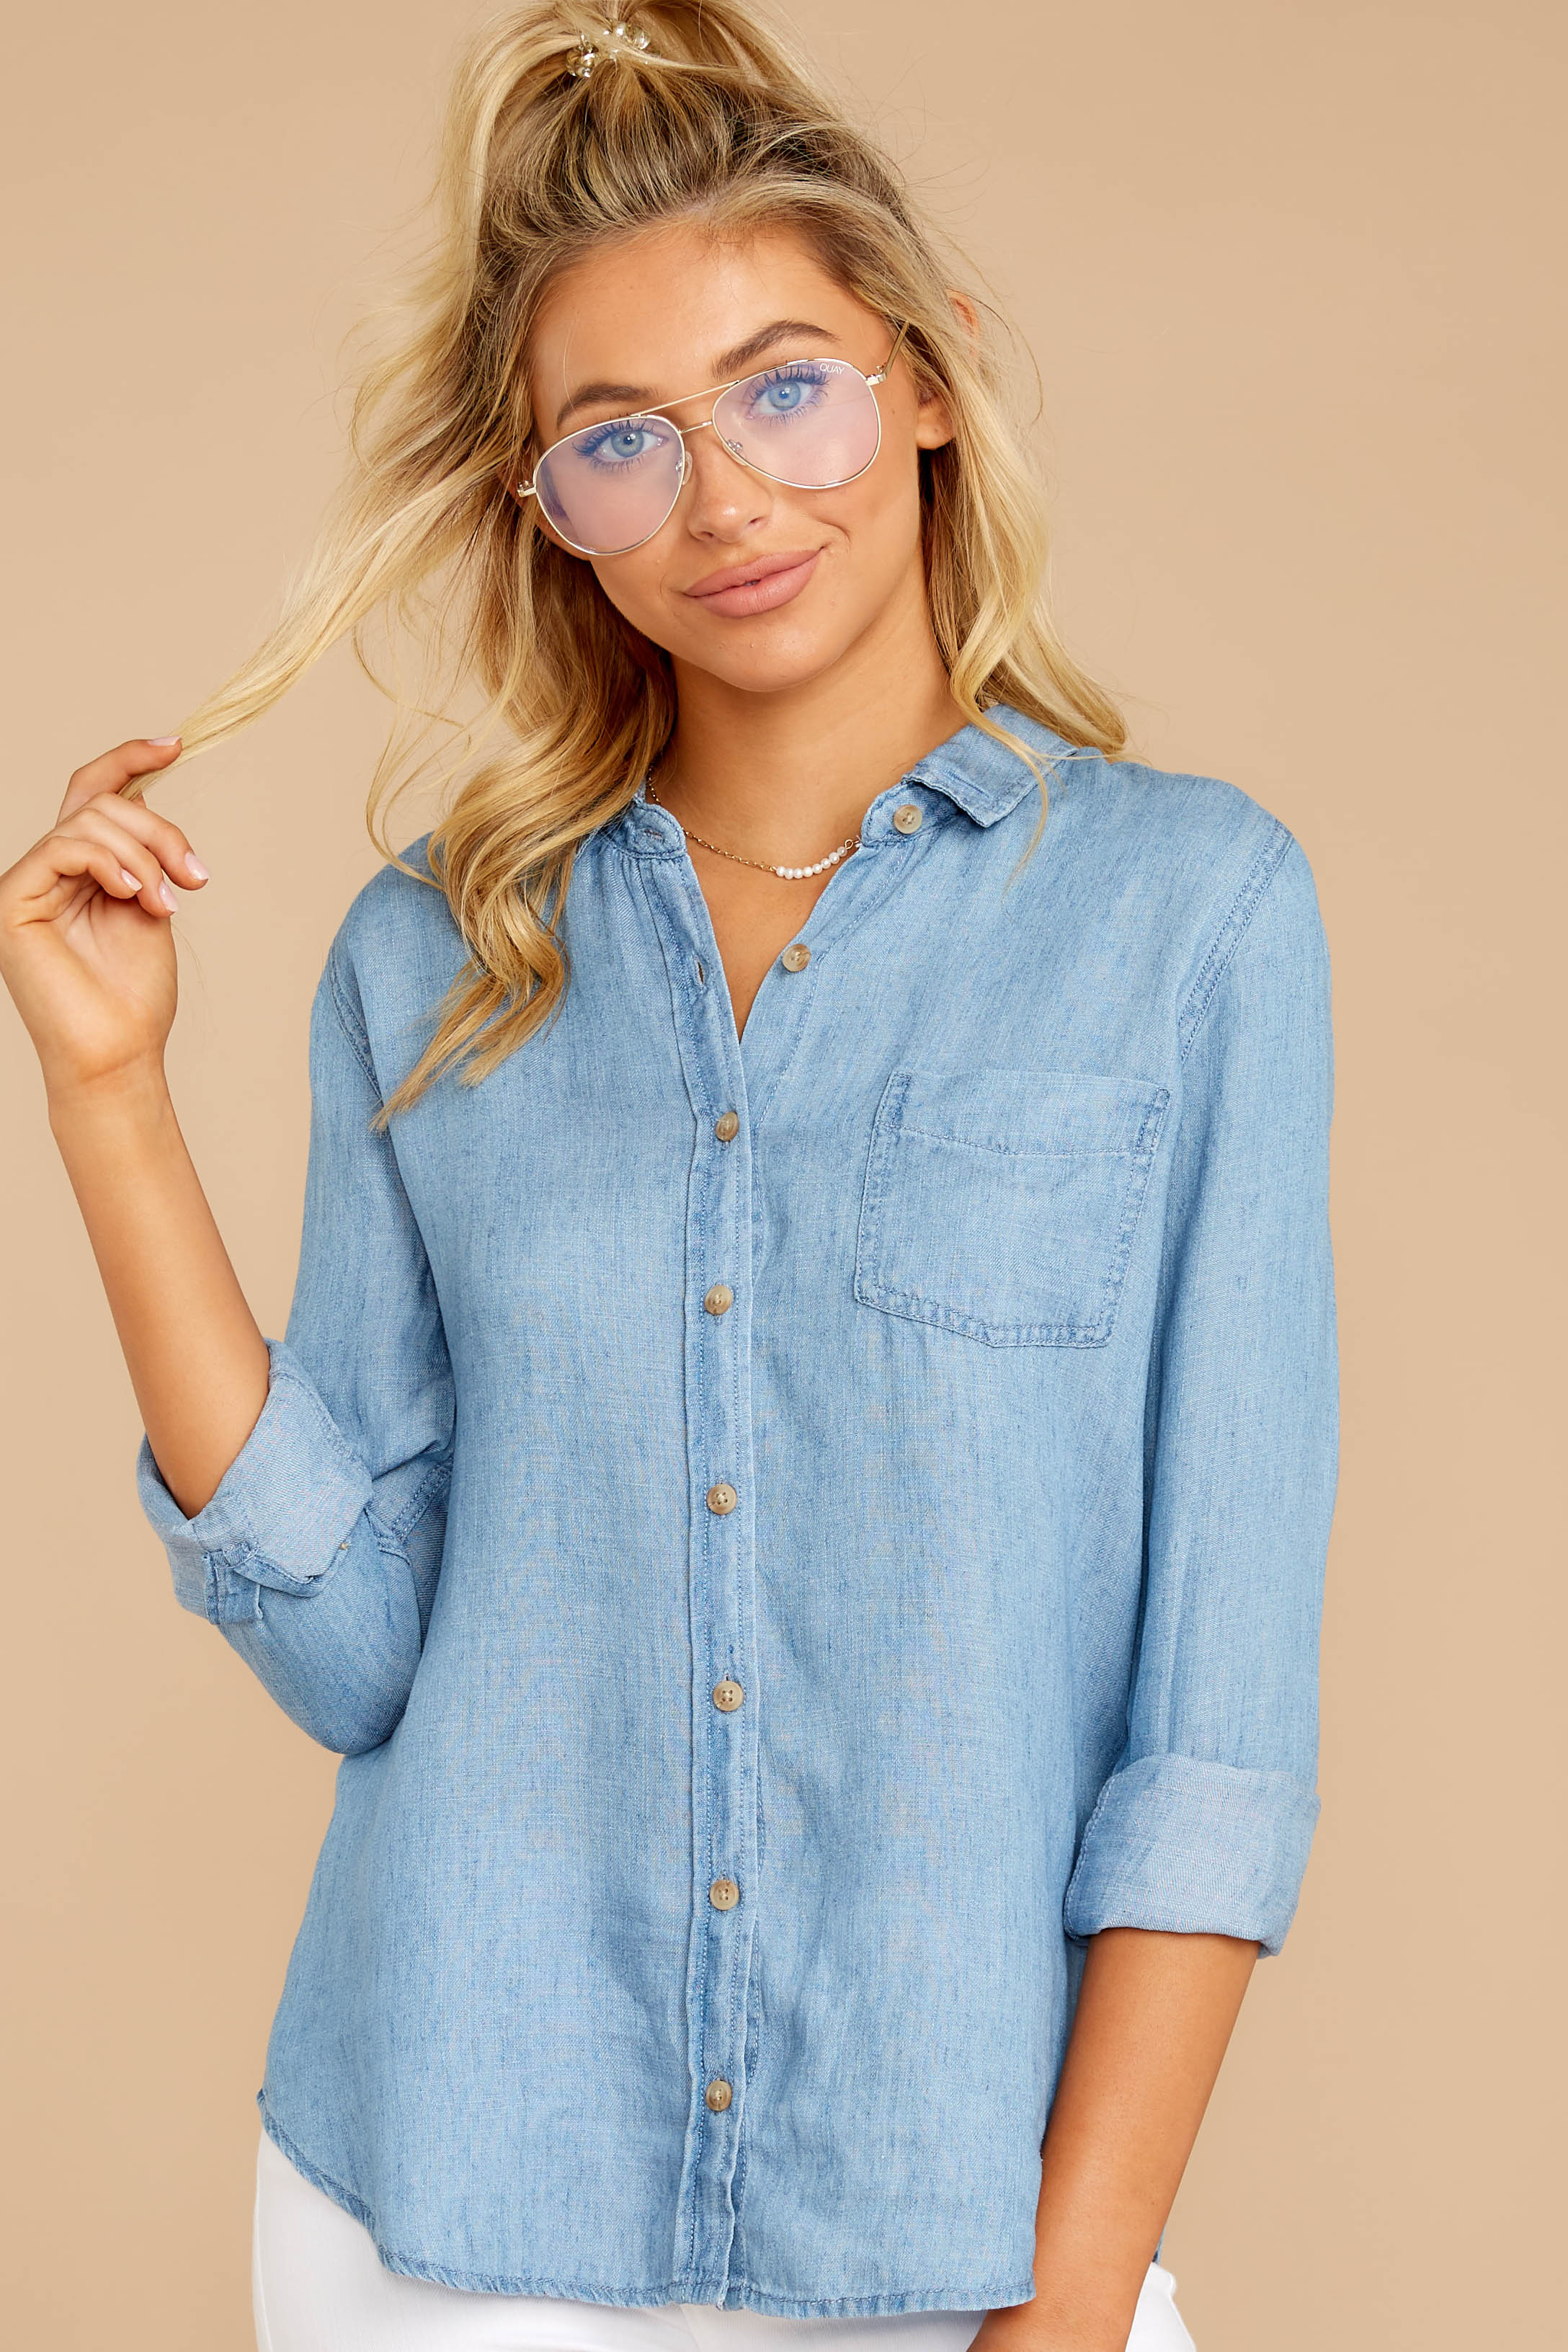 2 Evan Light Chambray Button Up Top at reddress.com